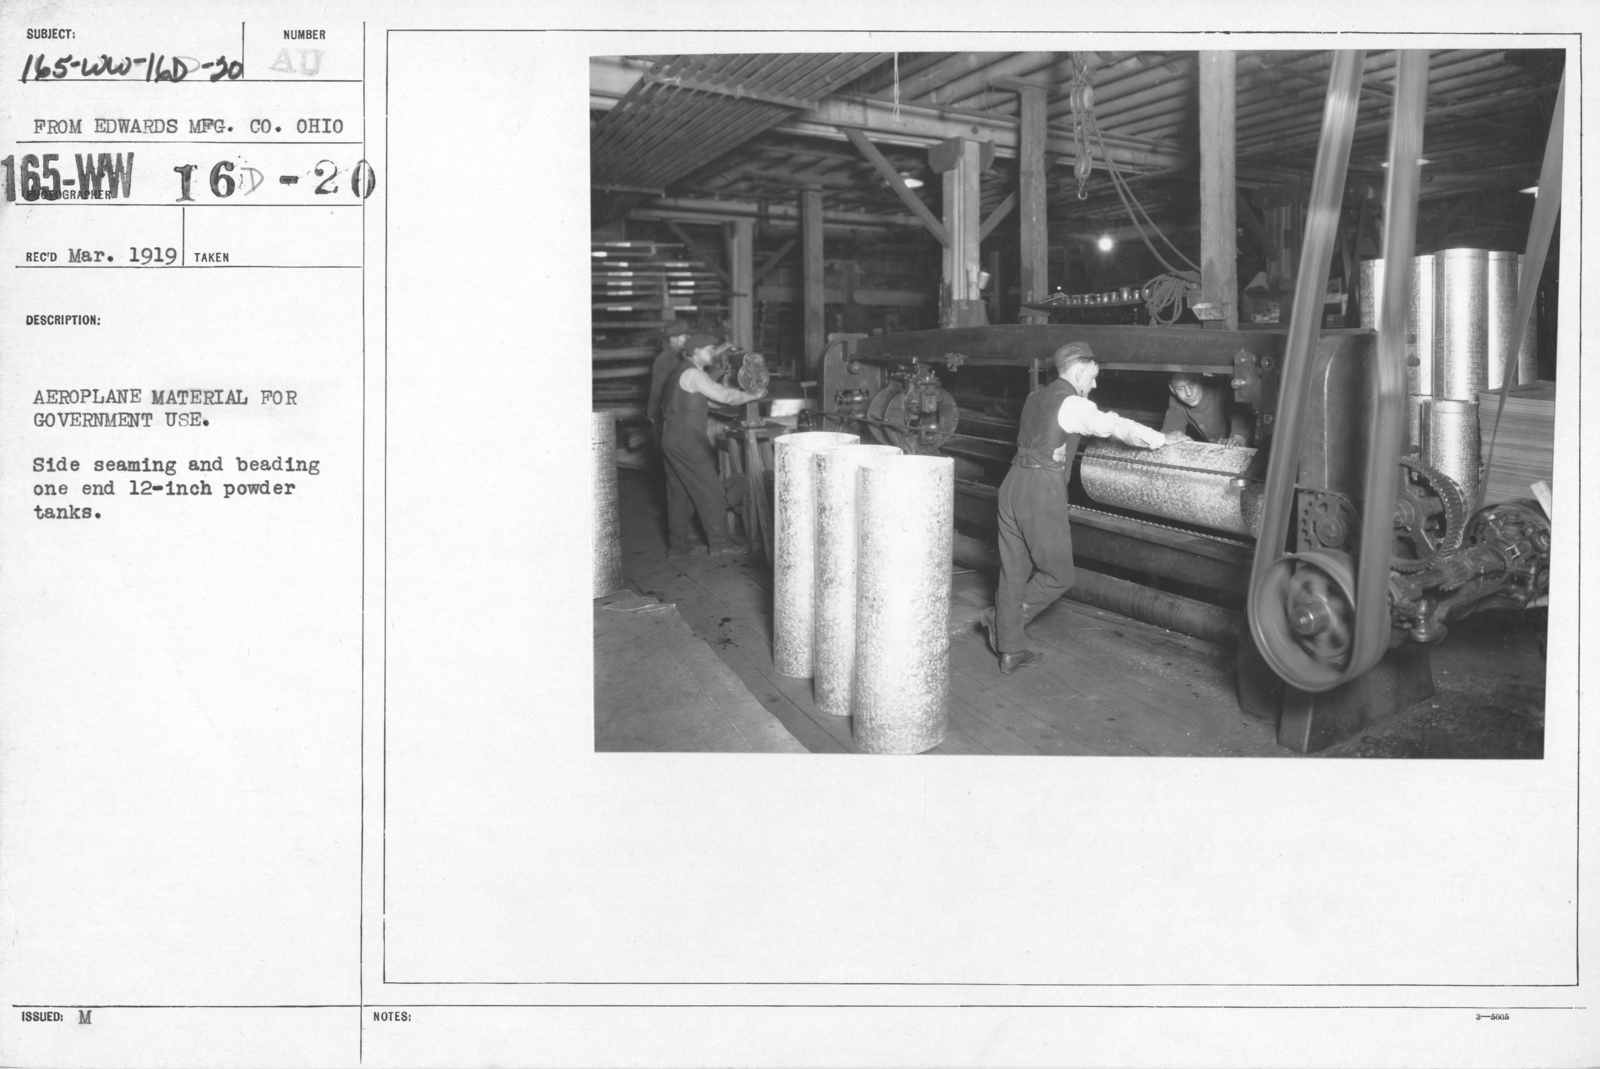 Airplanes - Parts - Aeroplane material for government use. Side seaming and beading one end 12-inch powder tanks. From Edwards MFG. CO., Ohio